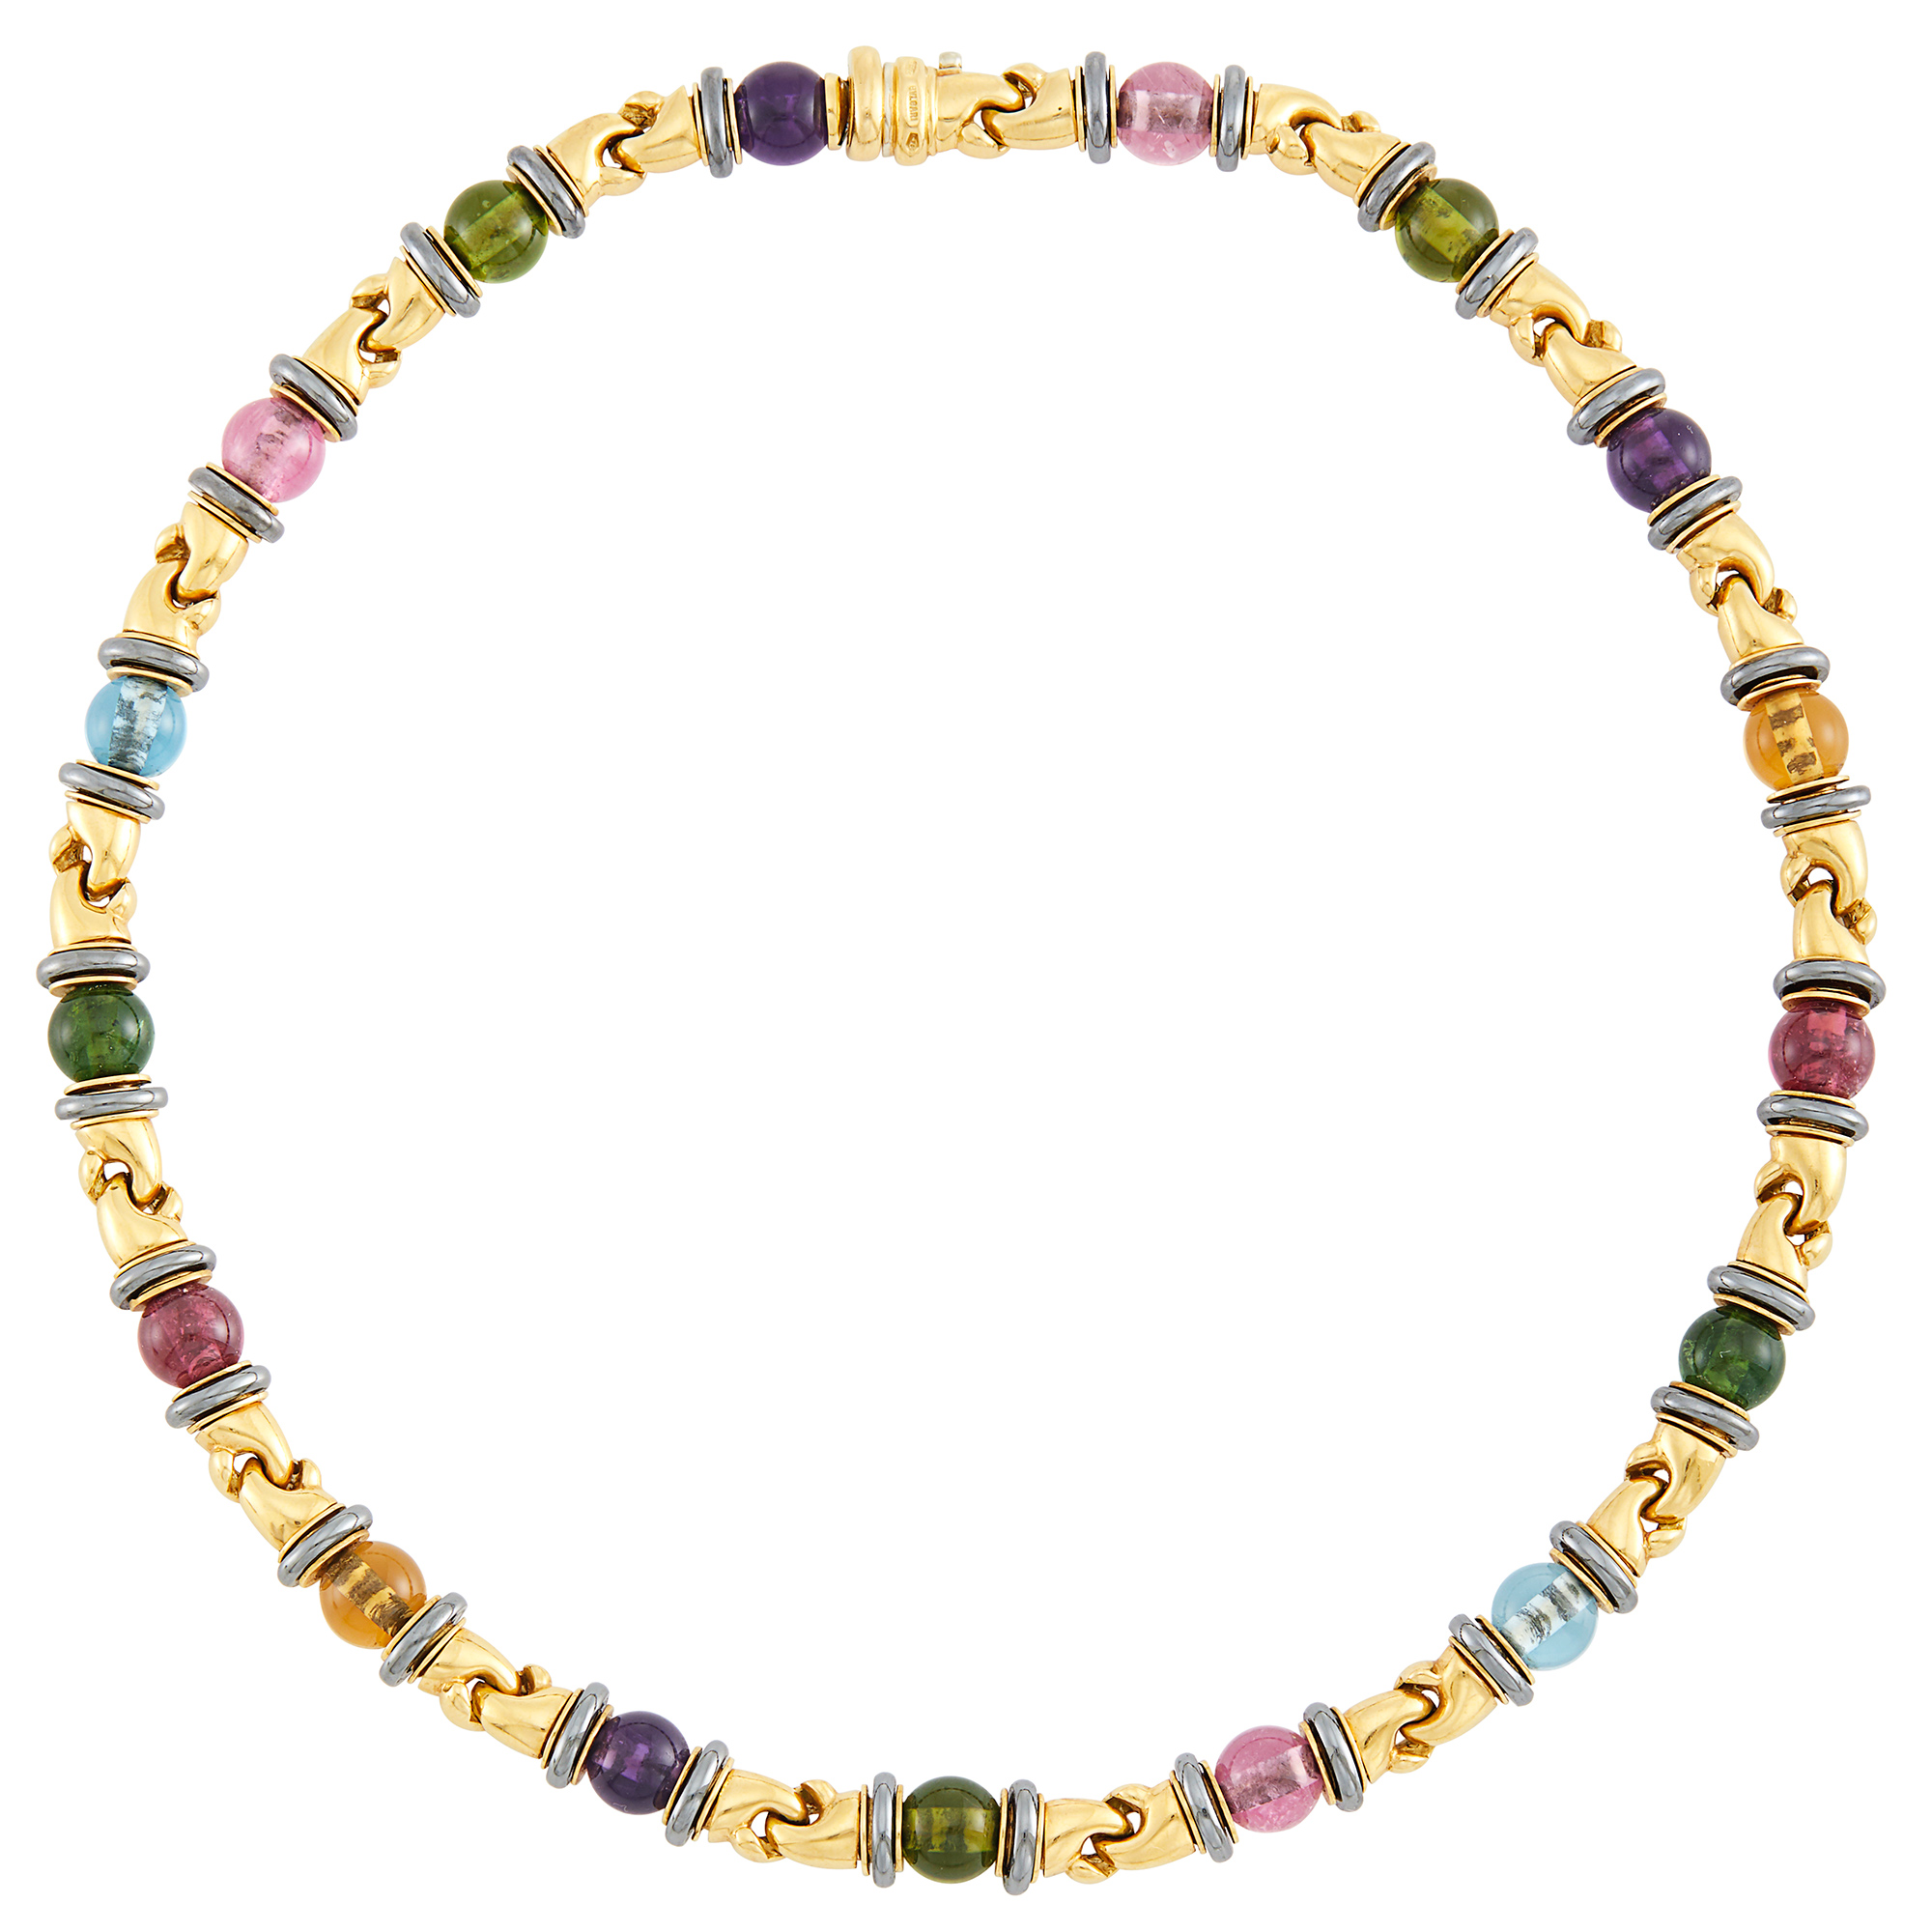 Lot image - Gold, Colored Stone Bead and Hematite Necklace, Bulgari